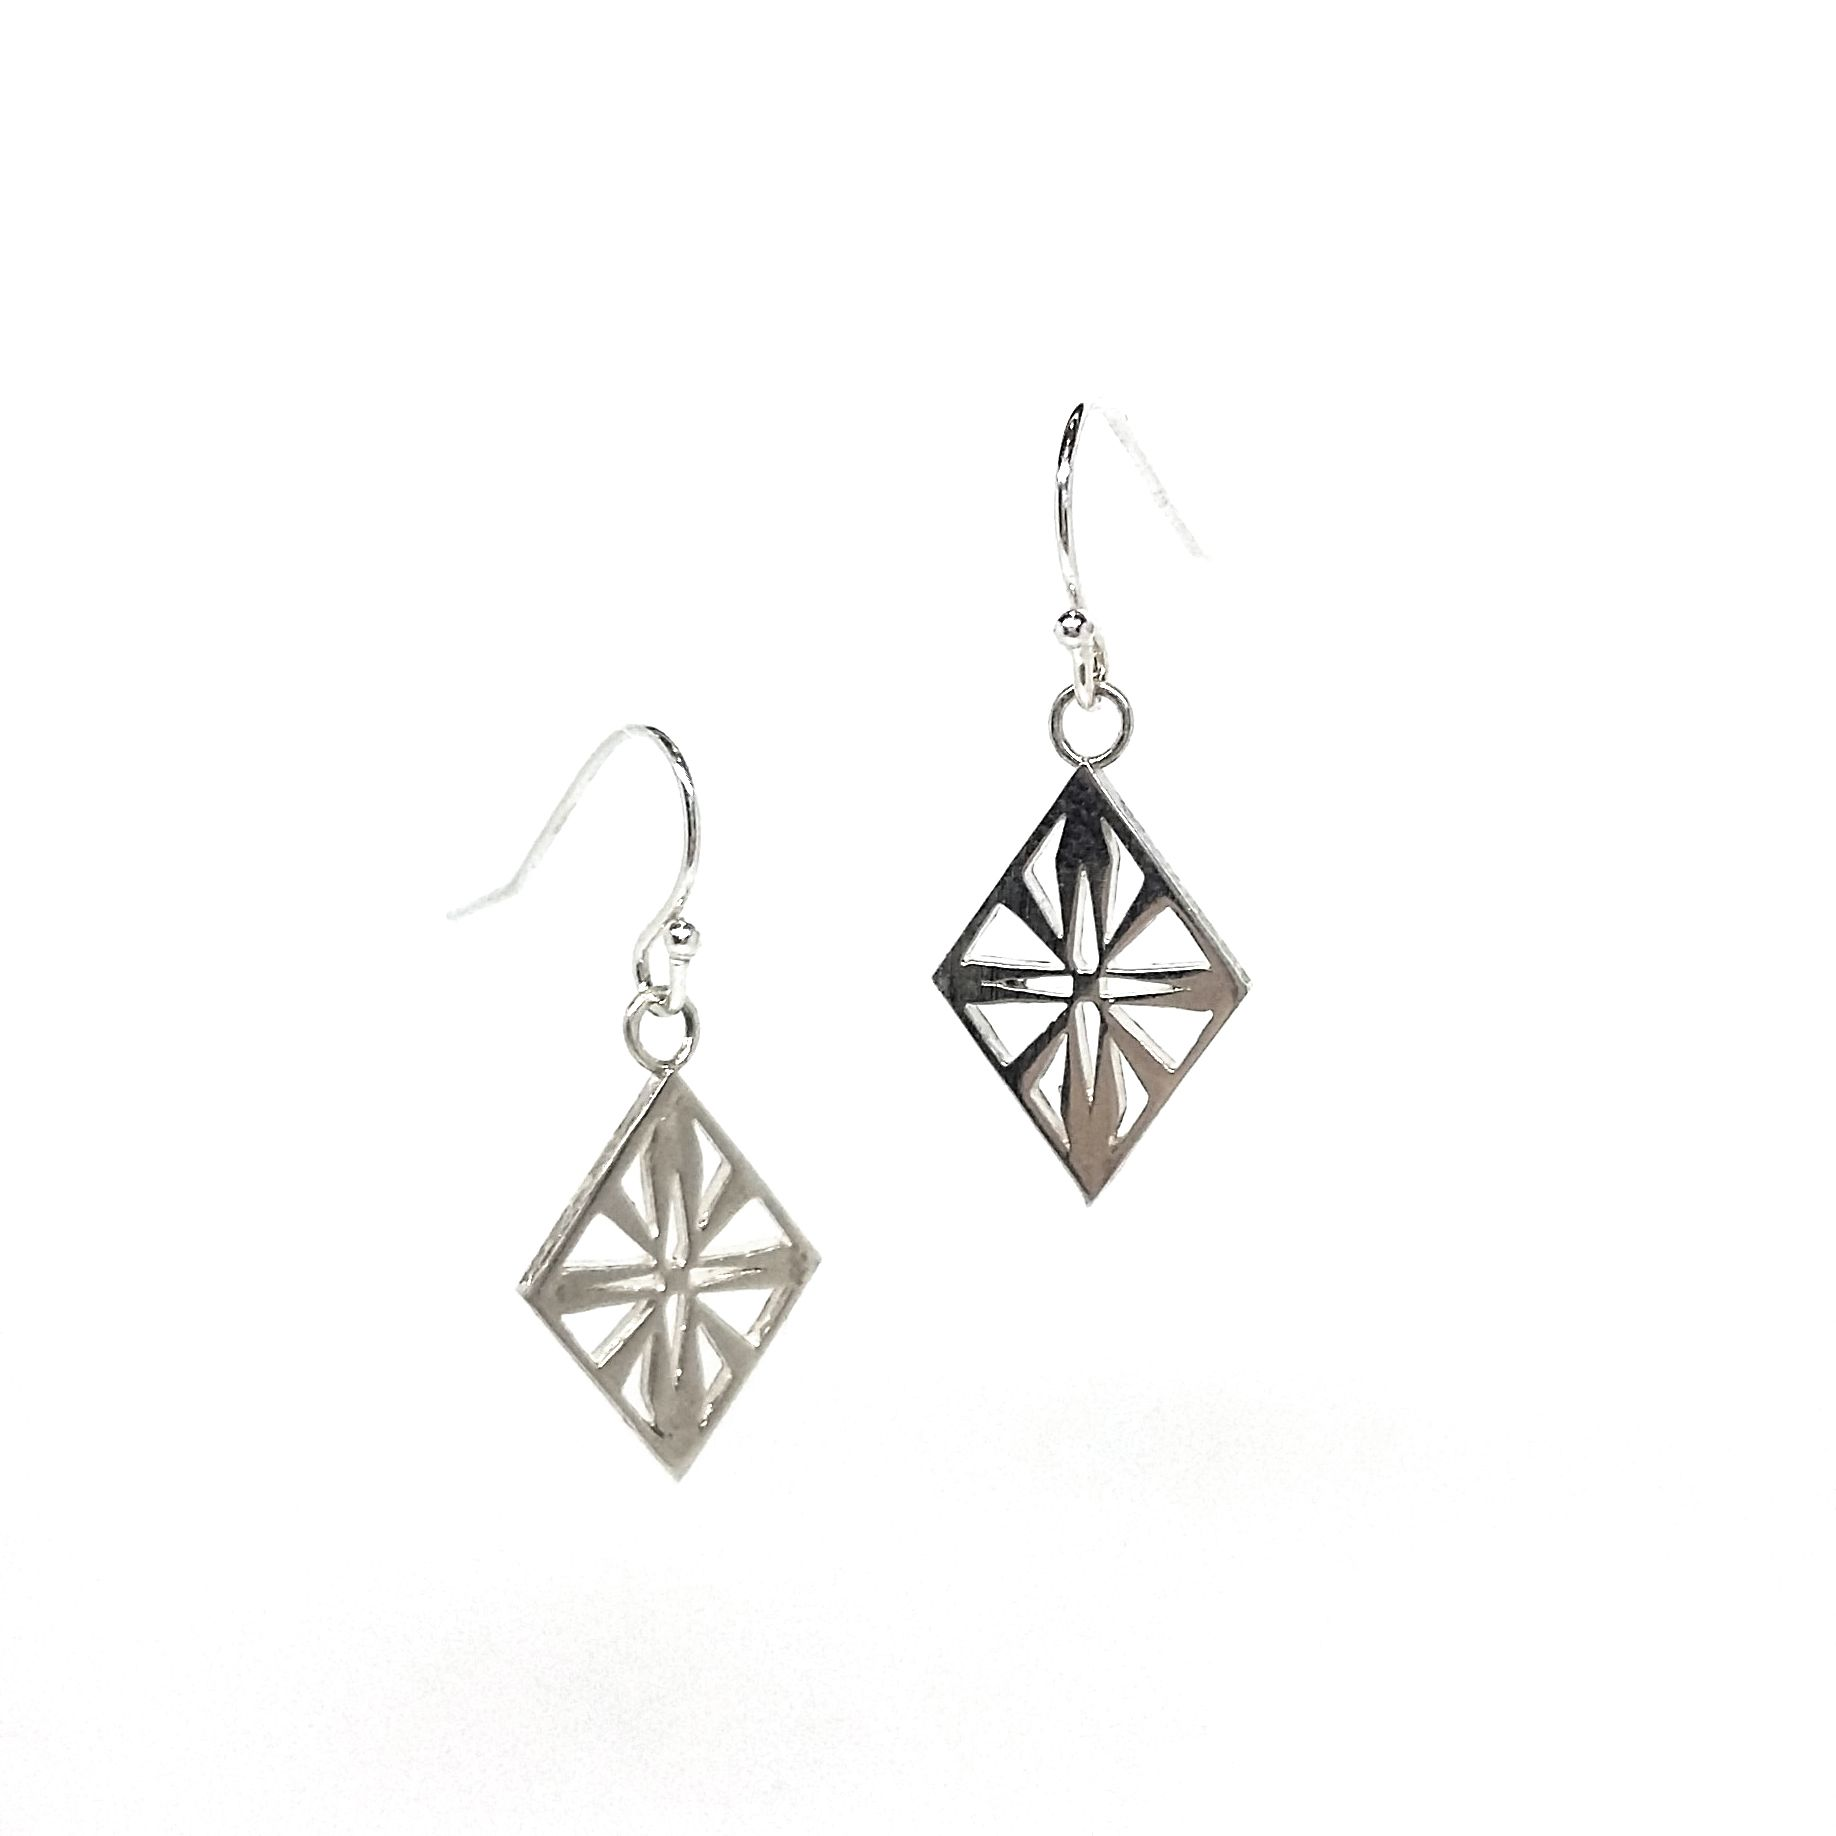 Artdeco Diamond Earrings The Much Coveted Art Deco Diamond Collection From  Blackbird London Hook Earrings With Freefloating Diamond Drop Design